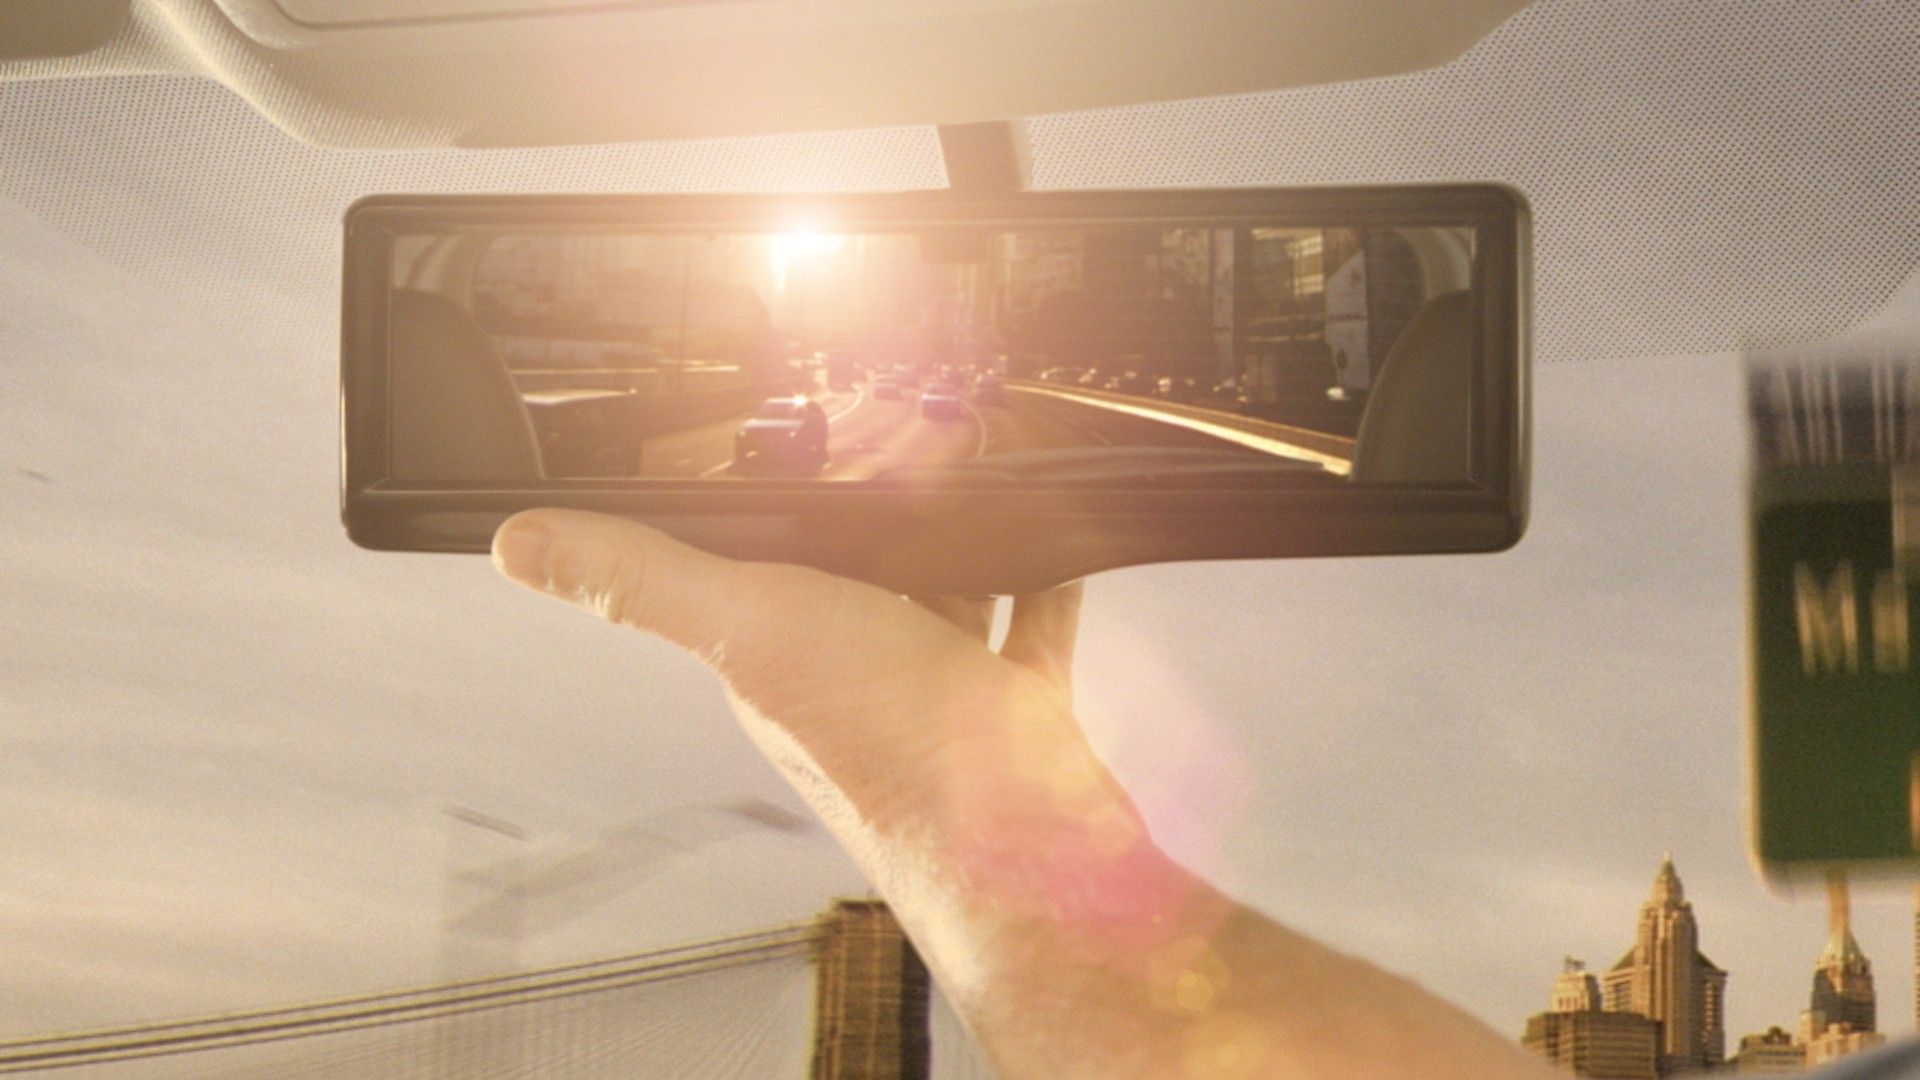 Normal mode of rearview mirror under bright light